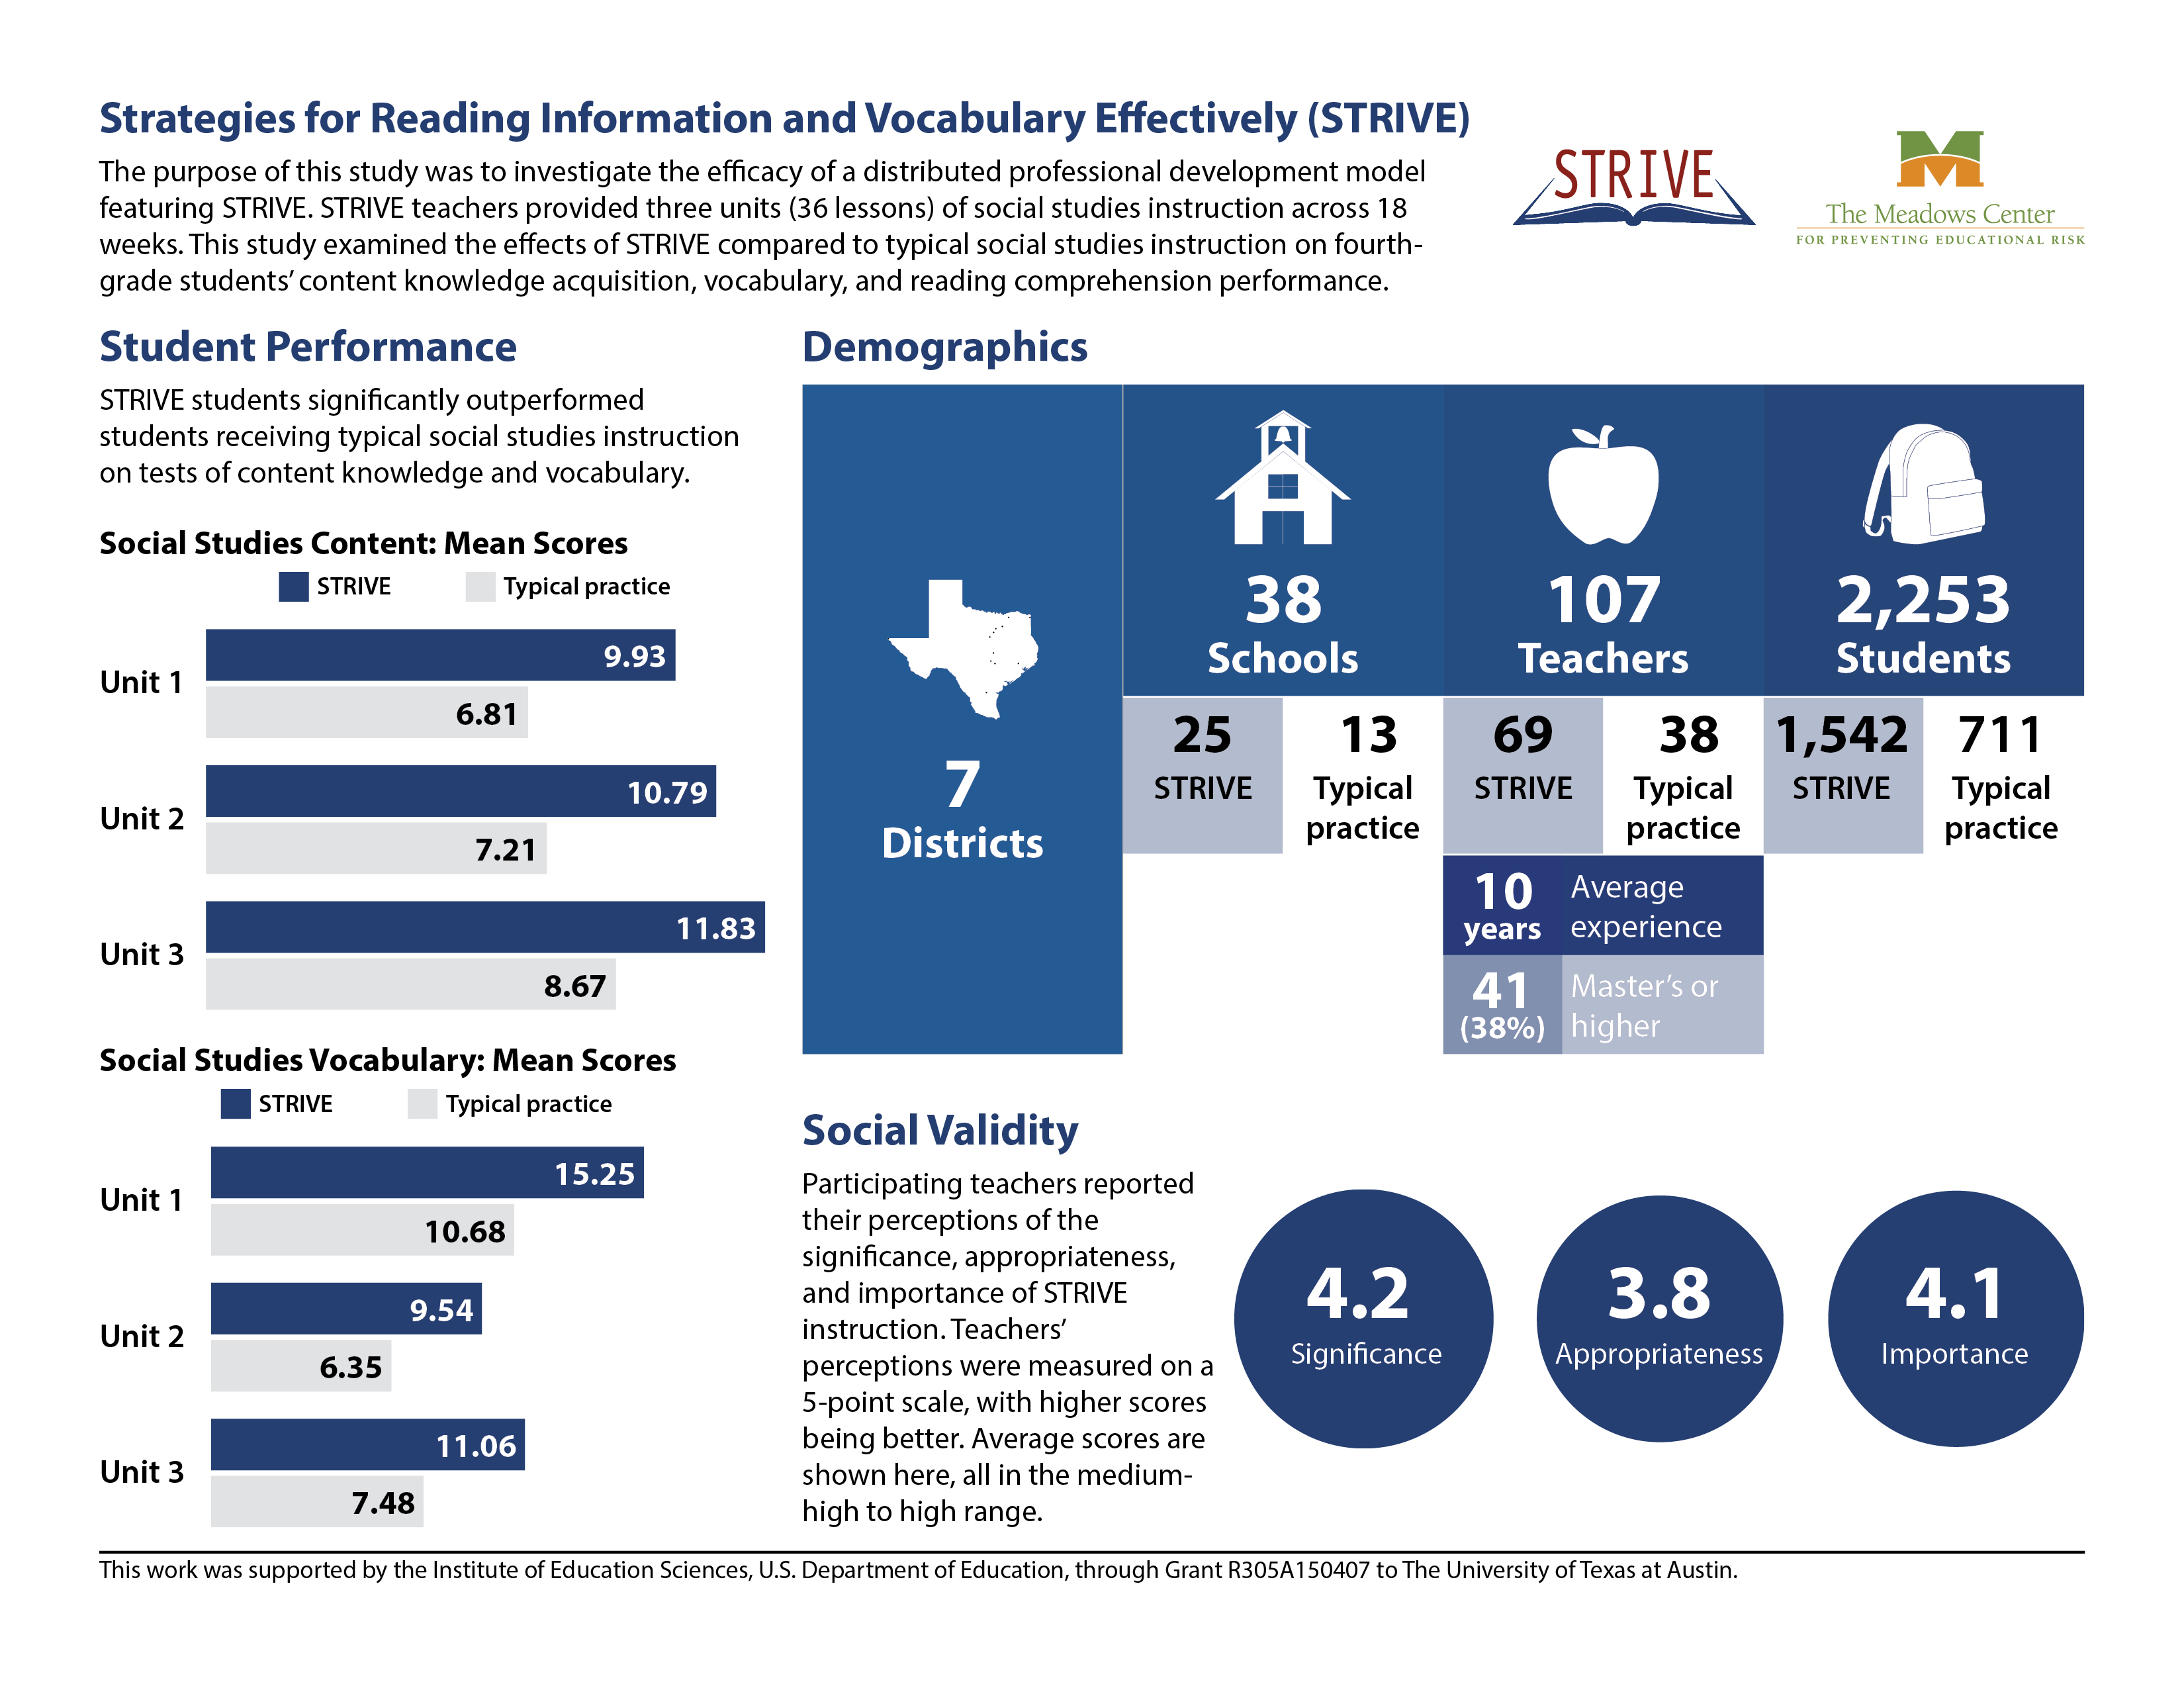 Infographic showing the STRIVE's student performance, demographics, and social validity